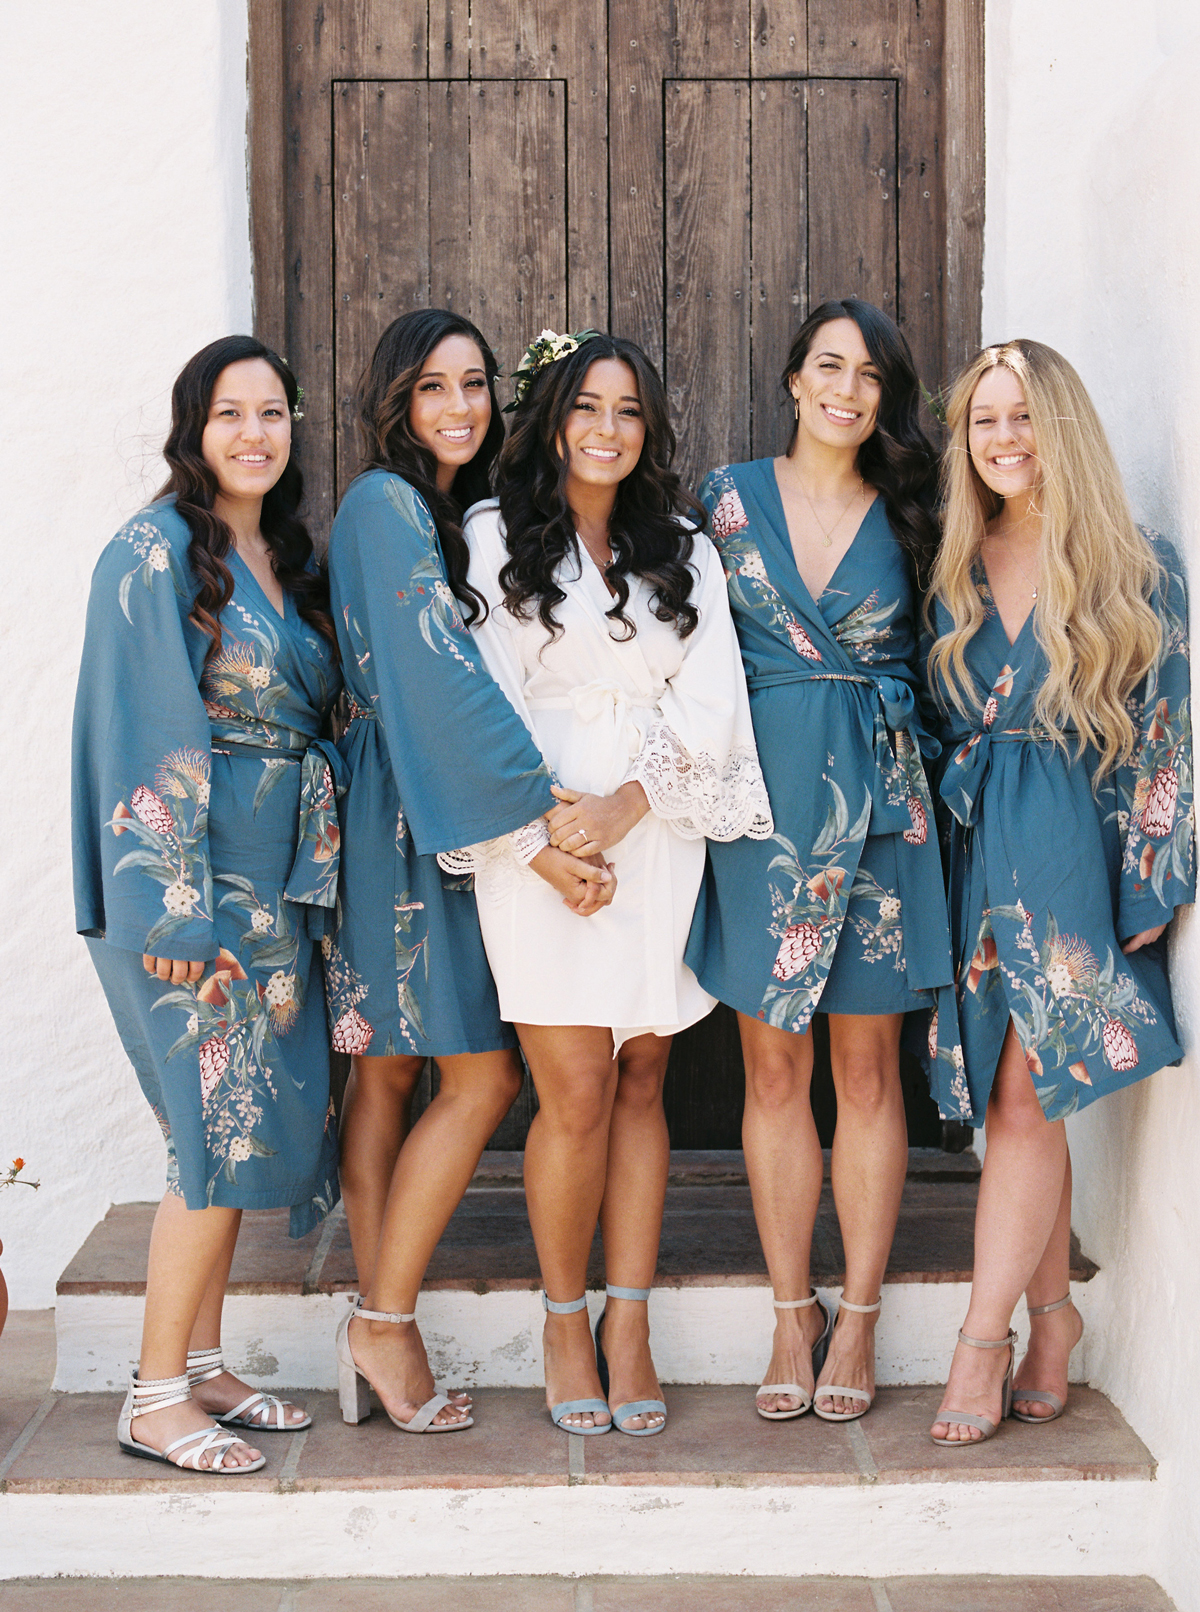 Maid-of-Honor Dilemma: How to Deal with Delinquent Bridesmaids